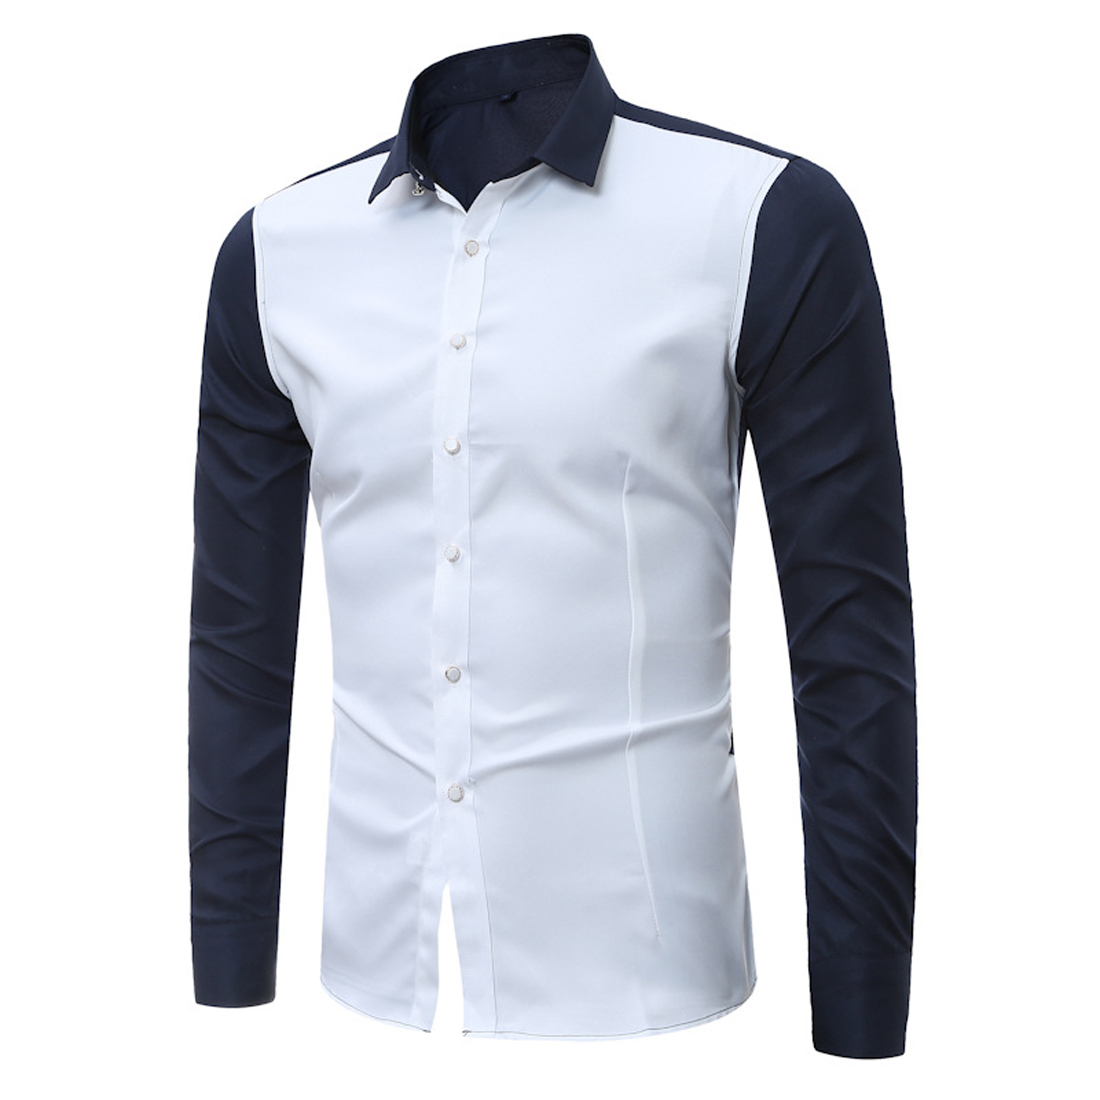 Online Get Cheap Blue Button up Shirts -Aliexpress.com | Alibaba Group